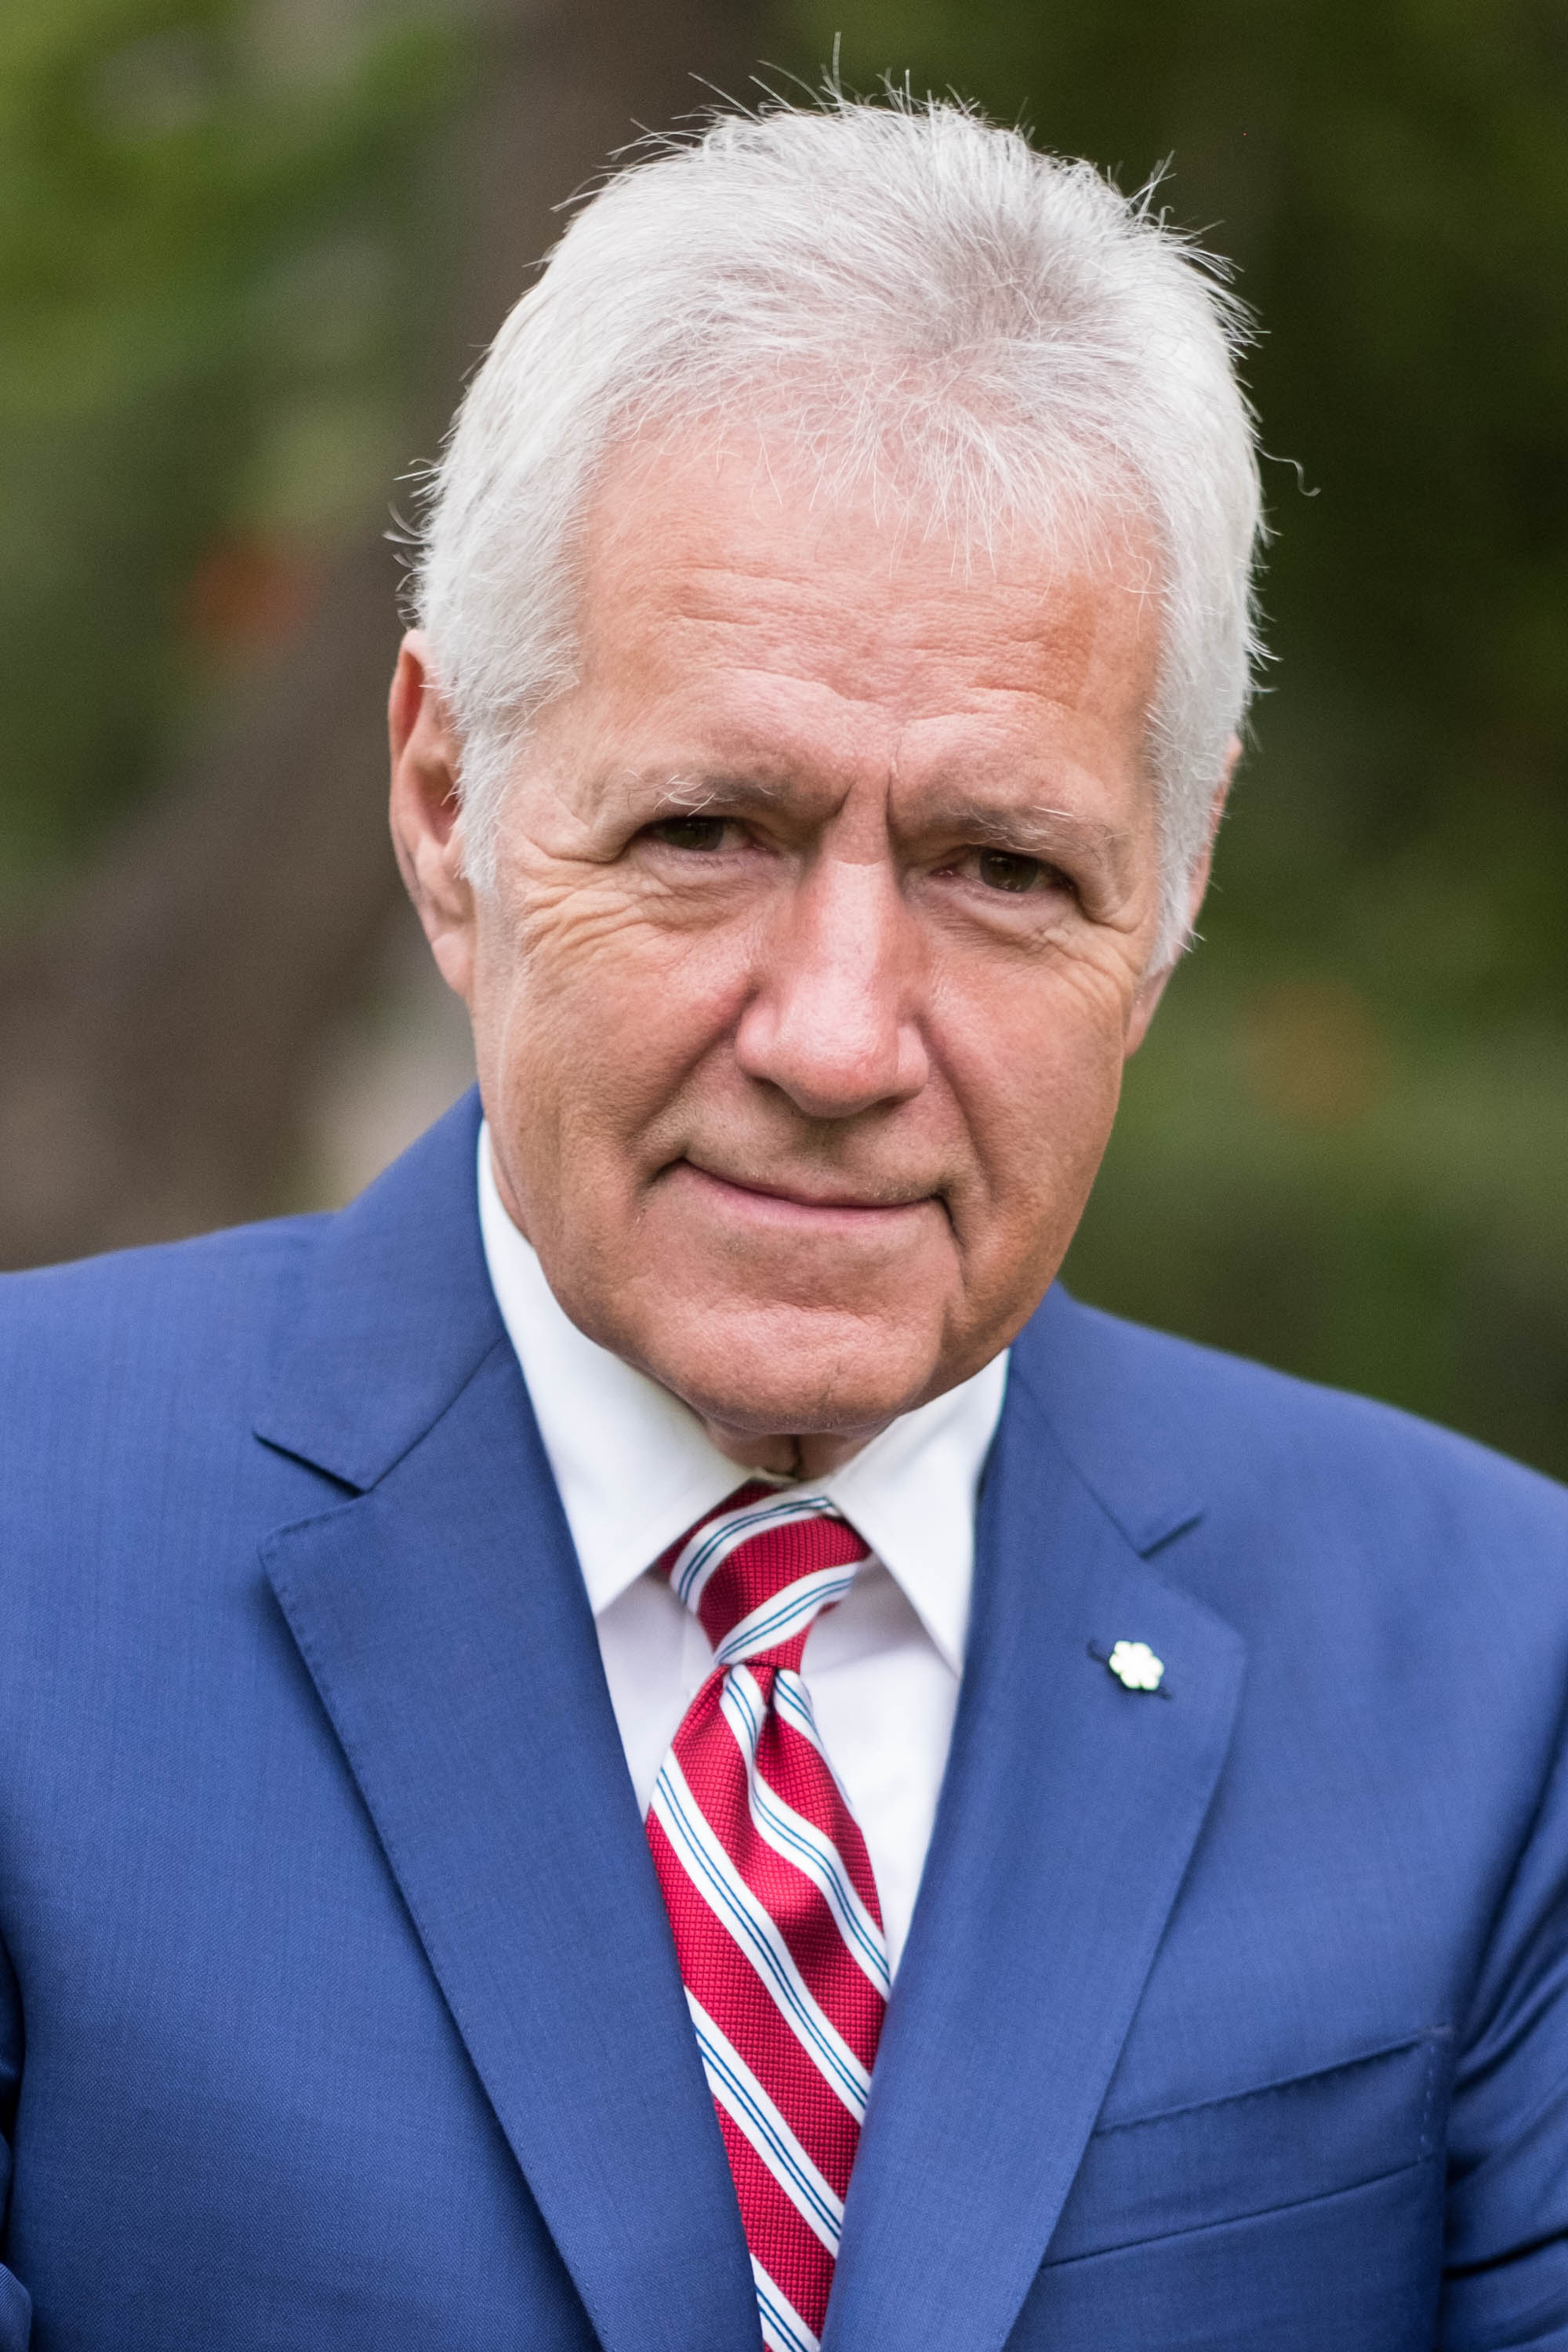 Alex Trebek attends the 150th anniversary of Canada's Confederation on June 30, 2017, in Los Angeles, California. | Source: Getty Images.